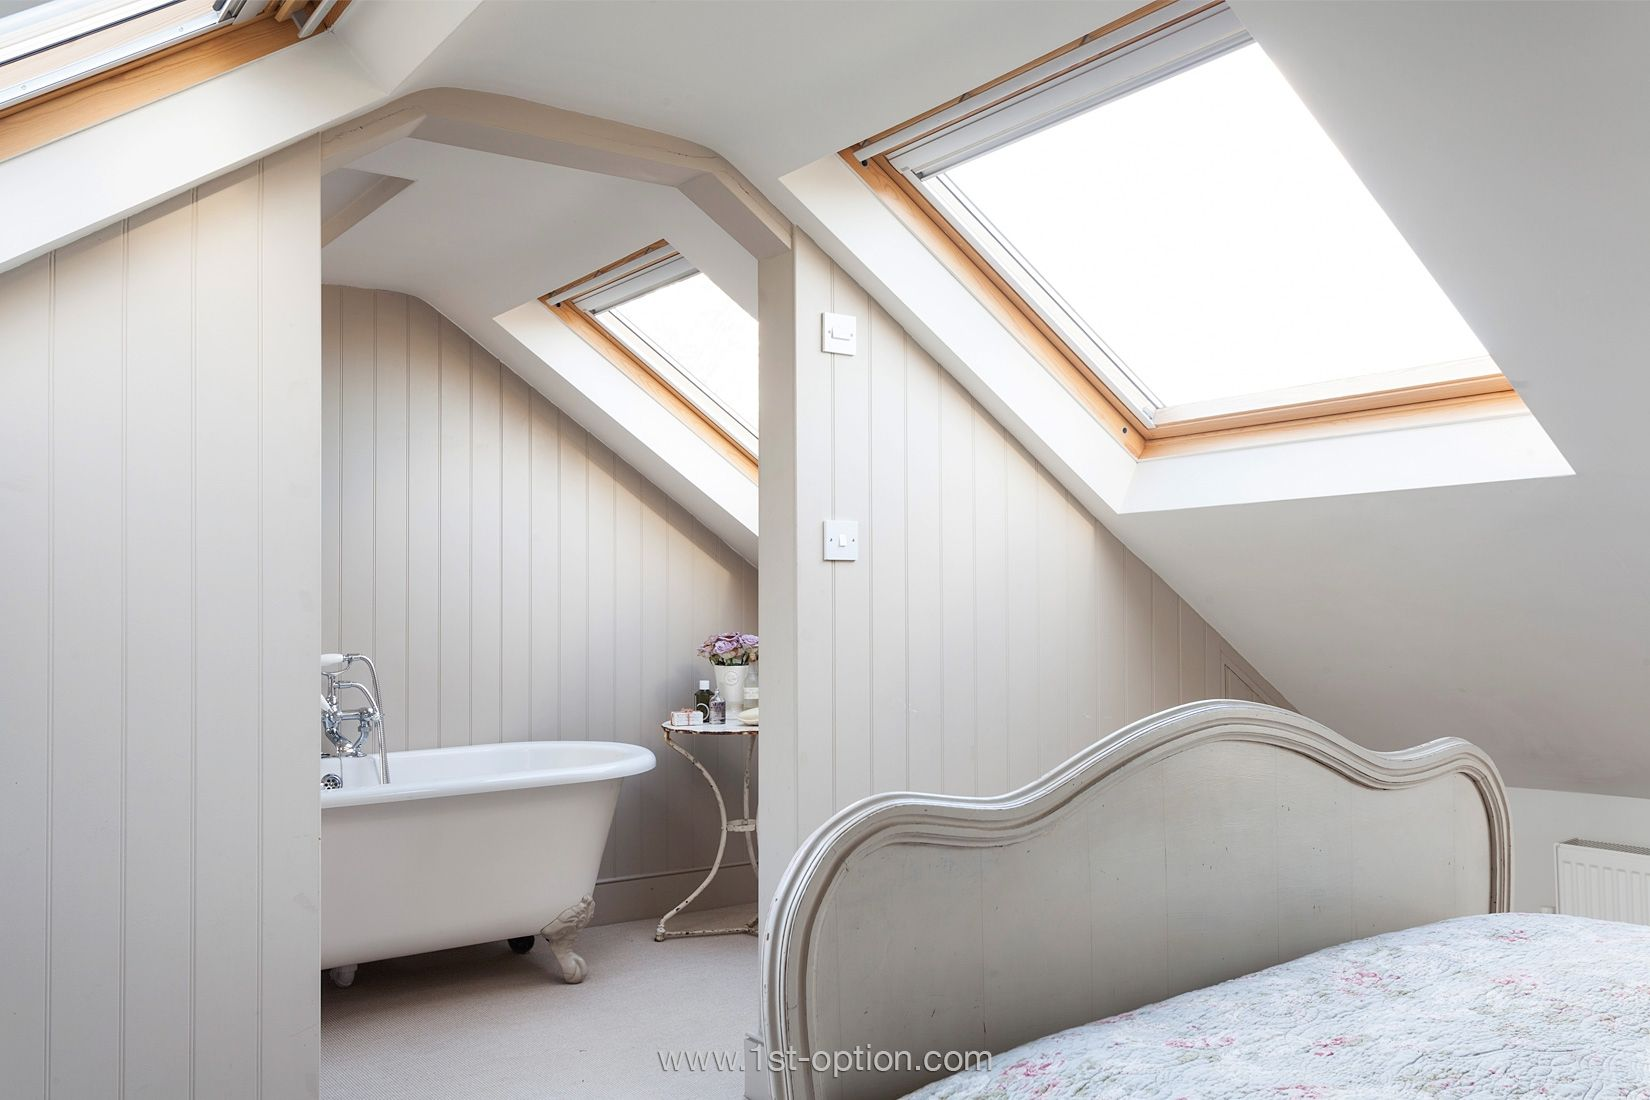 Bedroom with loft ideas  Porcelain  Film and Photoshoot Location in London  st Option